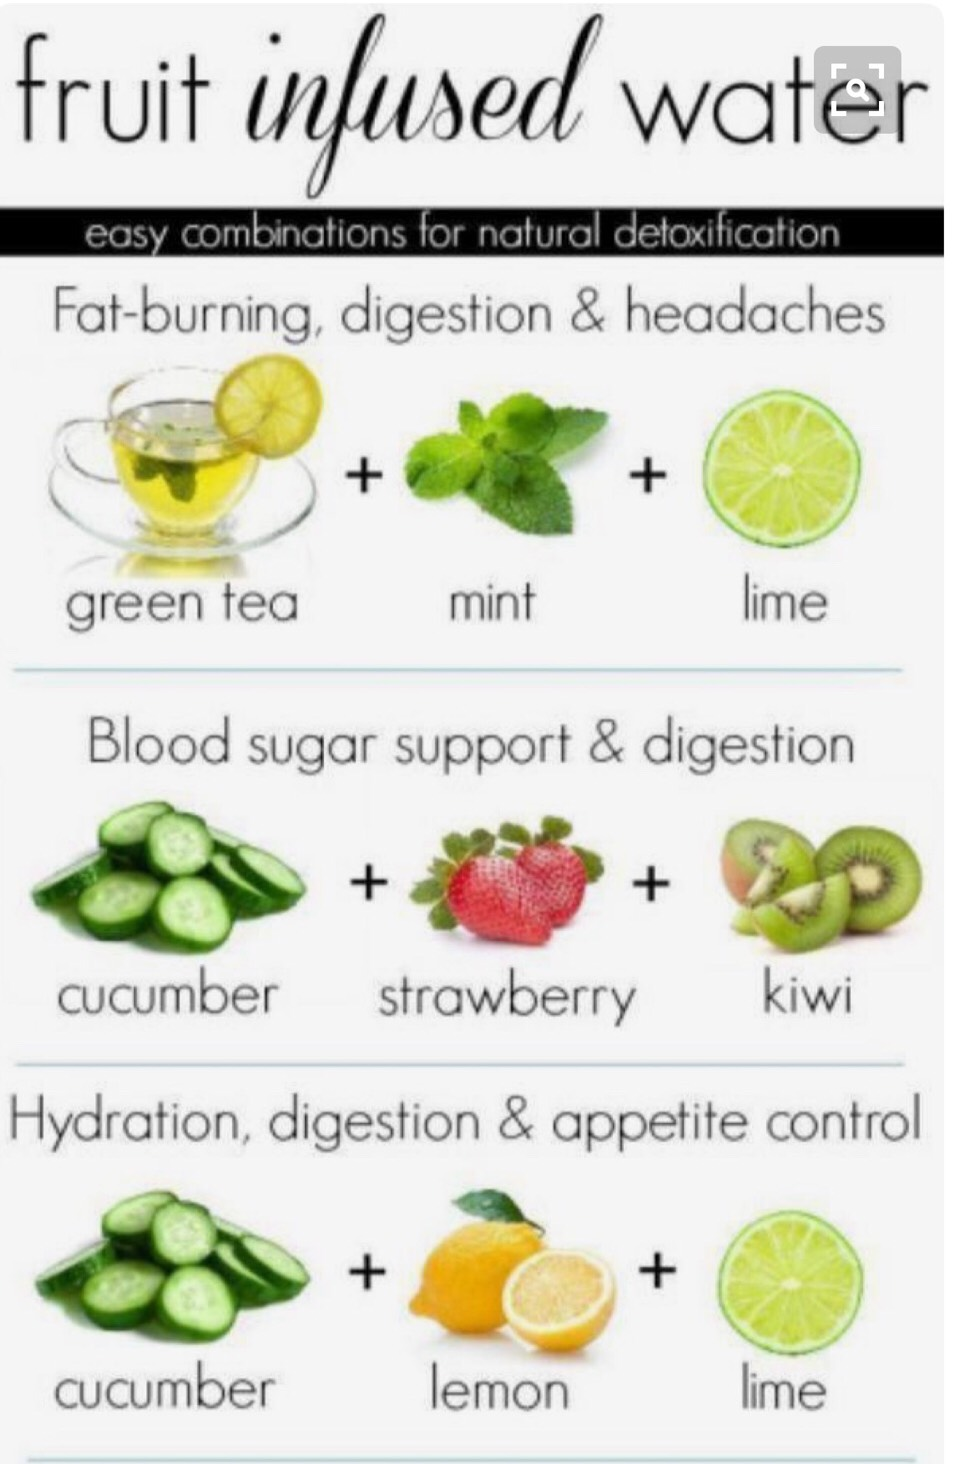 Fruit infused water is a great detox drink.  Green tea is full if vitamins. If you drink this in the morning green tea will speed up the metabolism. Aiding in weight loss  Cucumbers is full of fiber and water.  Lemons are great for metabolism and weight lose.